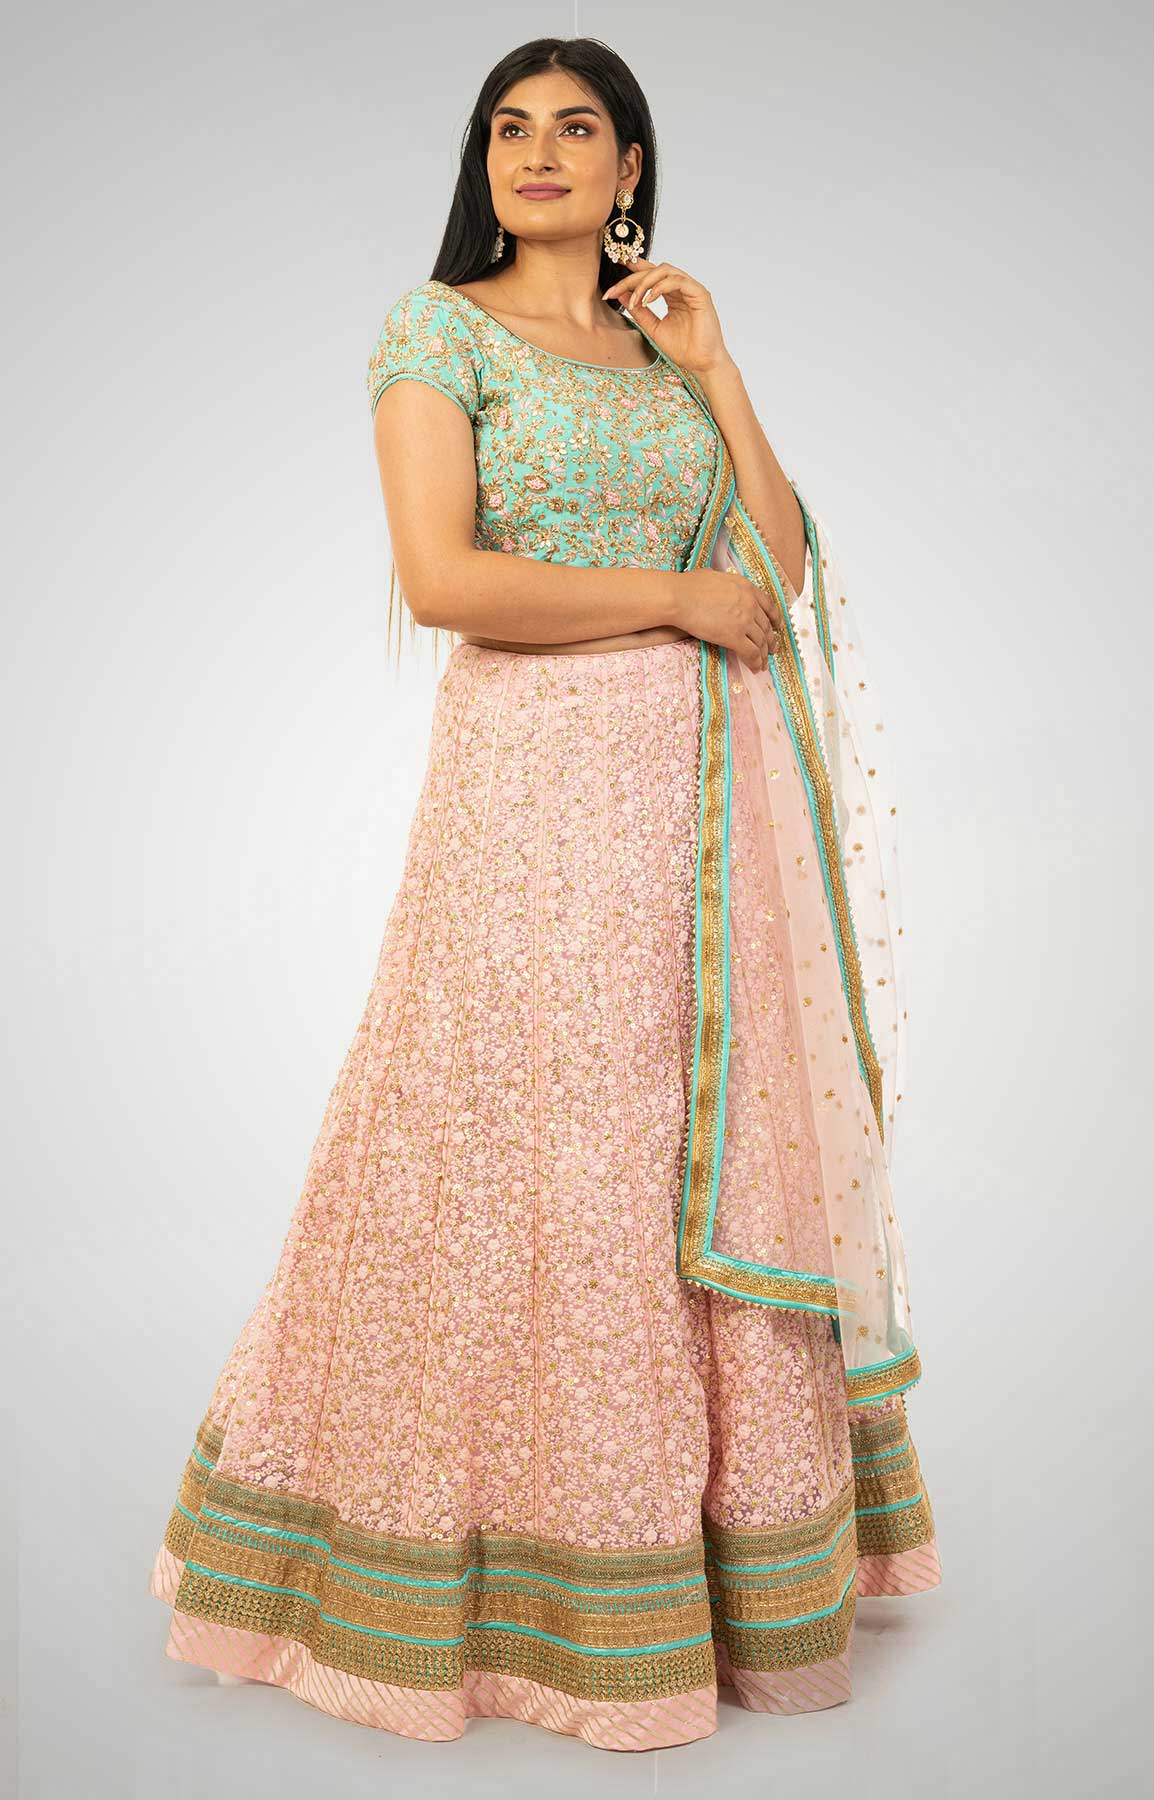 Baby Pink Chikankari Lehenga With Sequin Work Matched With Sea Green Zardozi Work Blouse – Viraaya By Ushnakmals